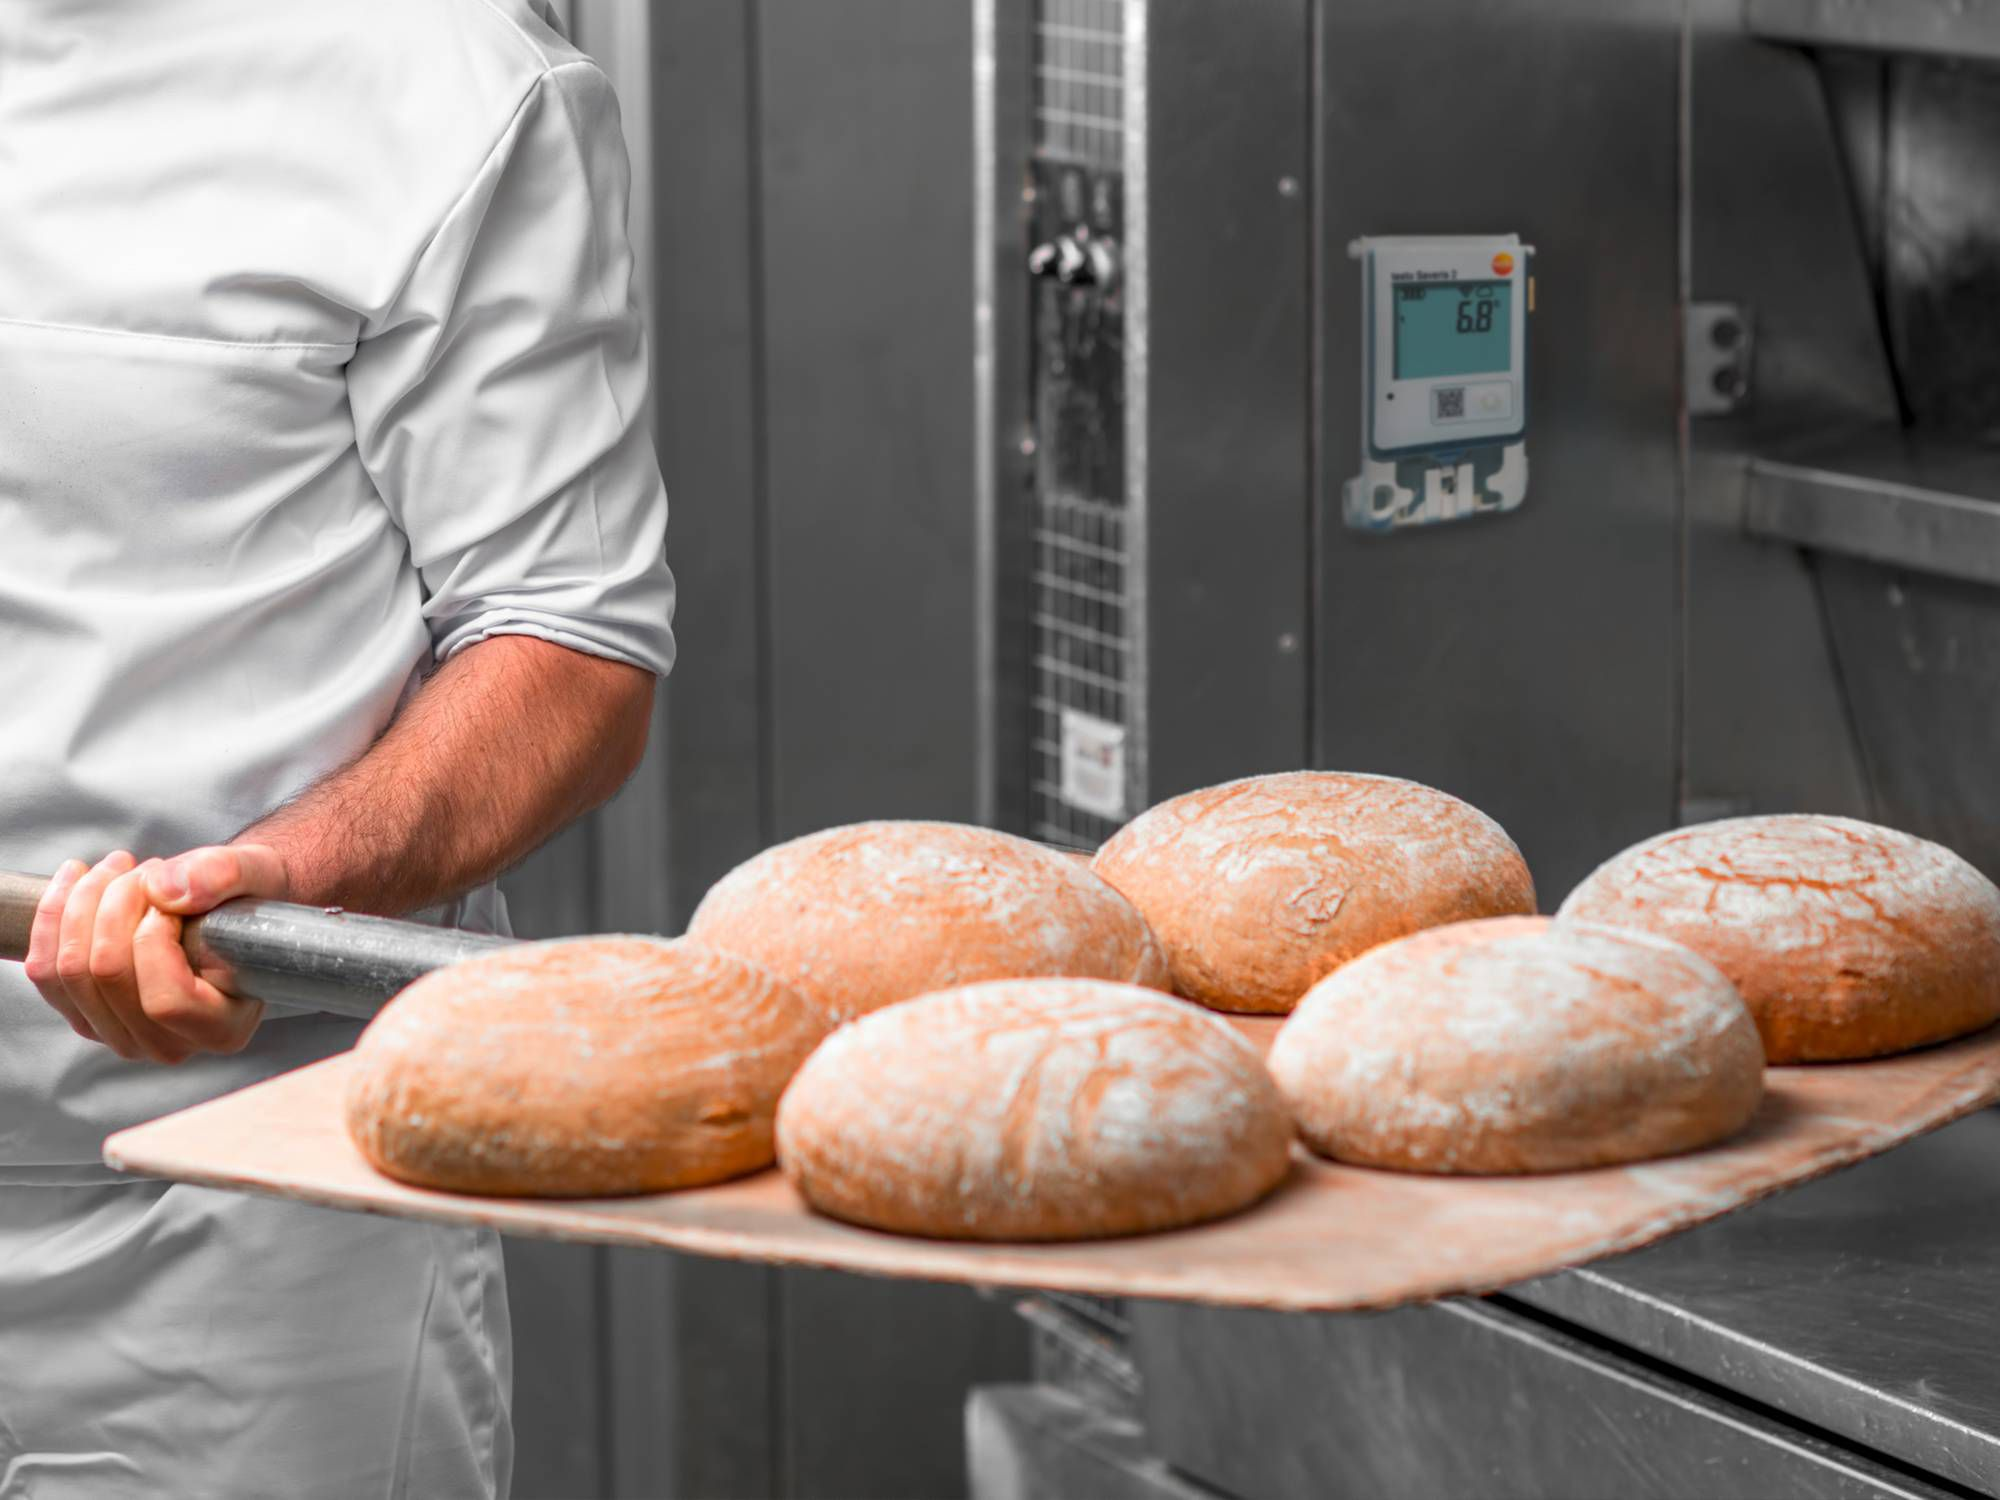 Temperature monitoring in a baker's shop